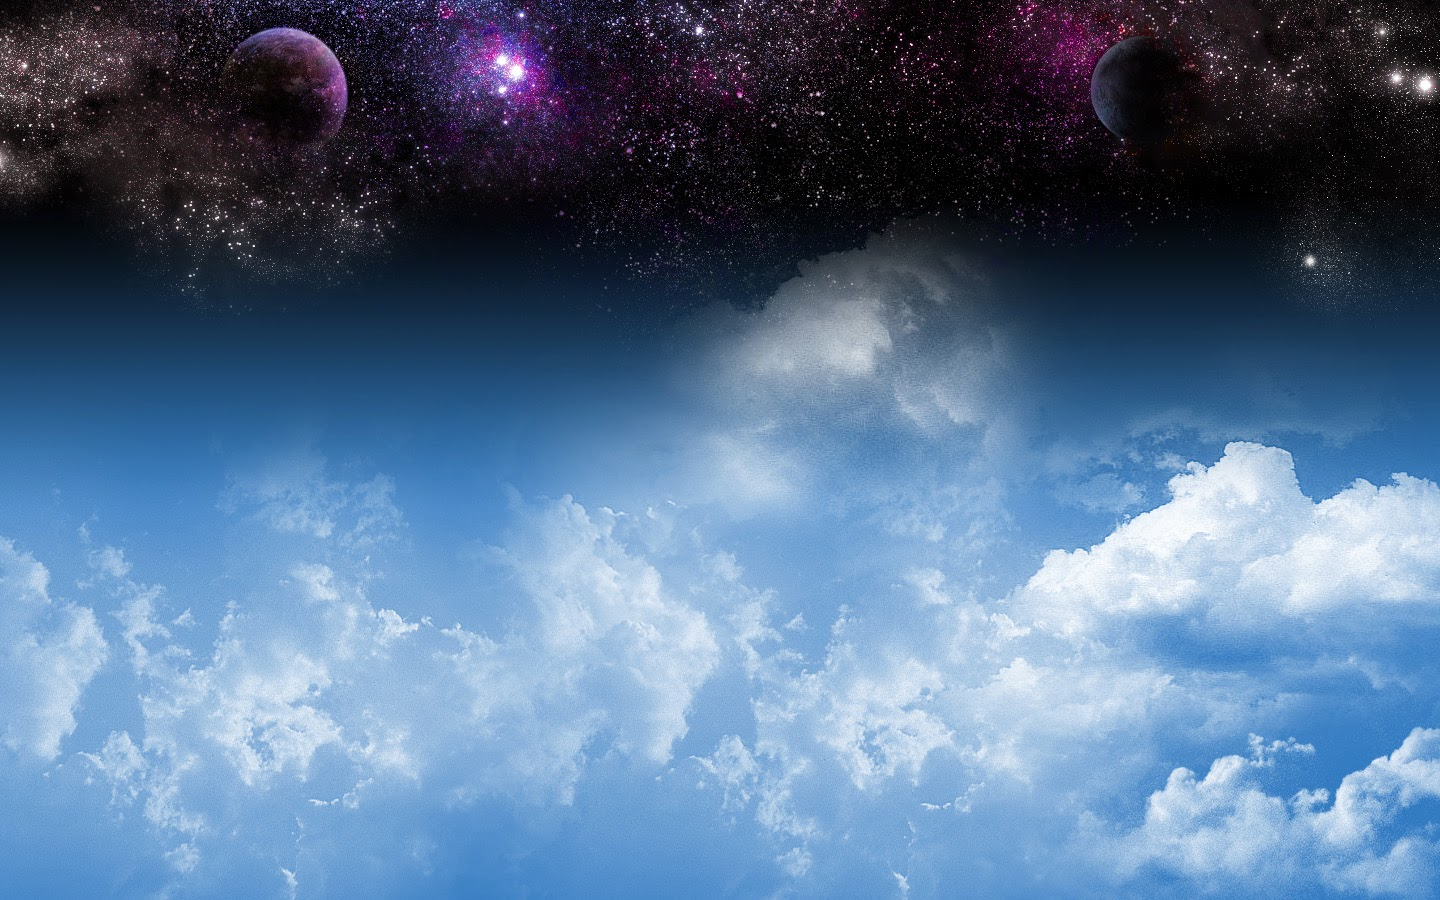 wallpapers hq 18 fantasy astronomy hd wallpapers